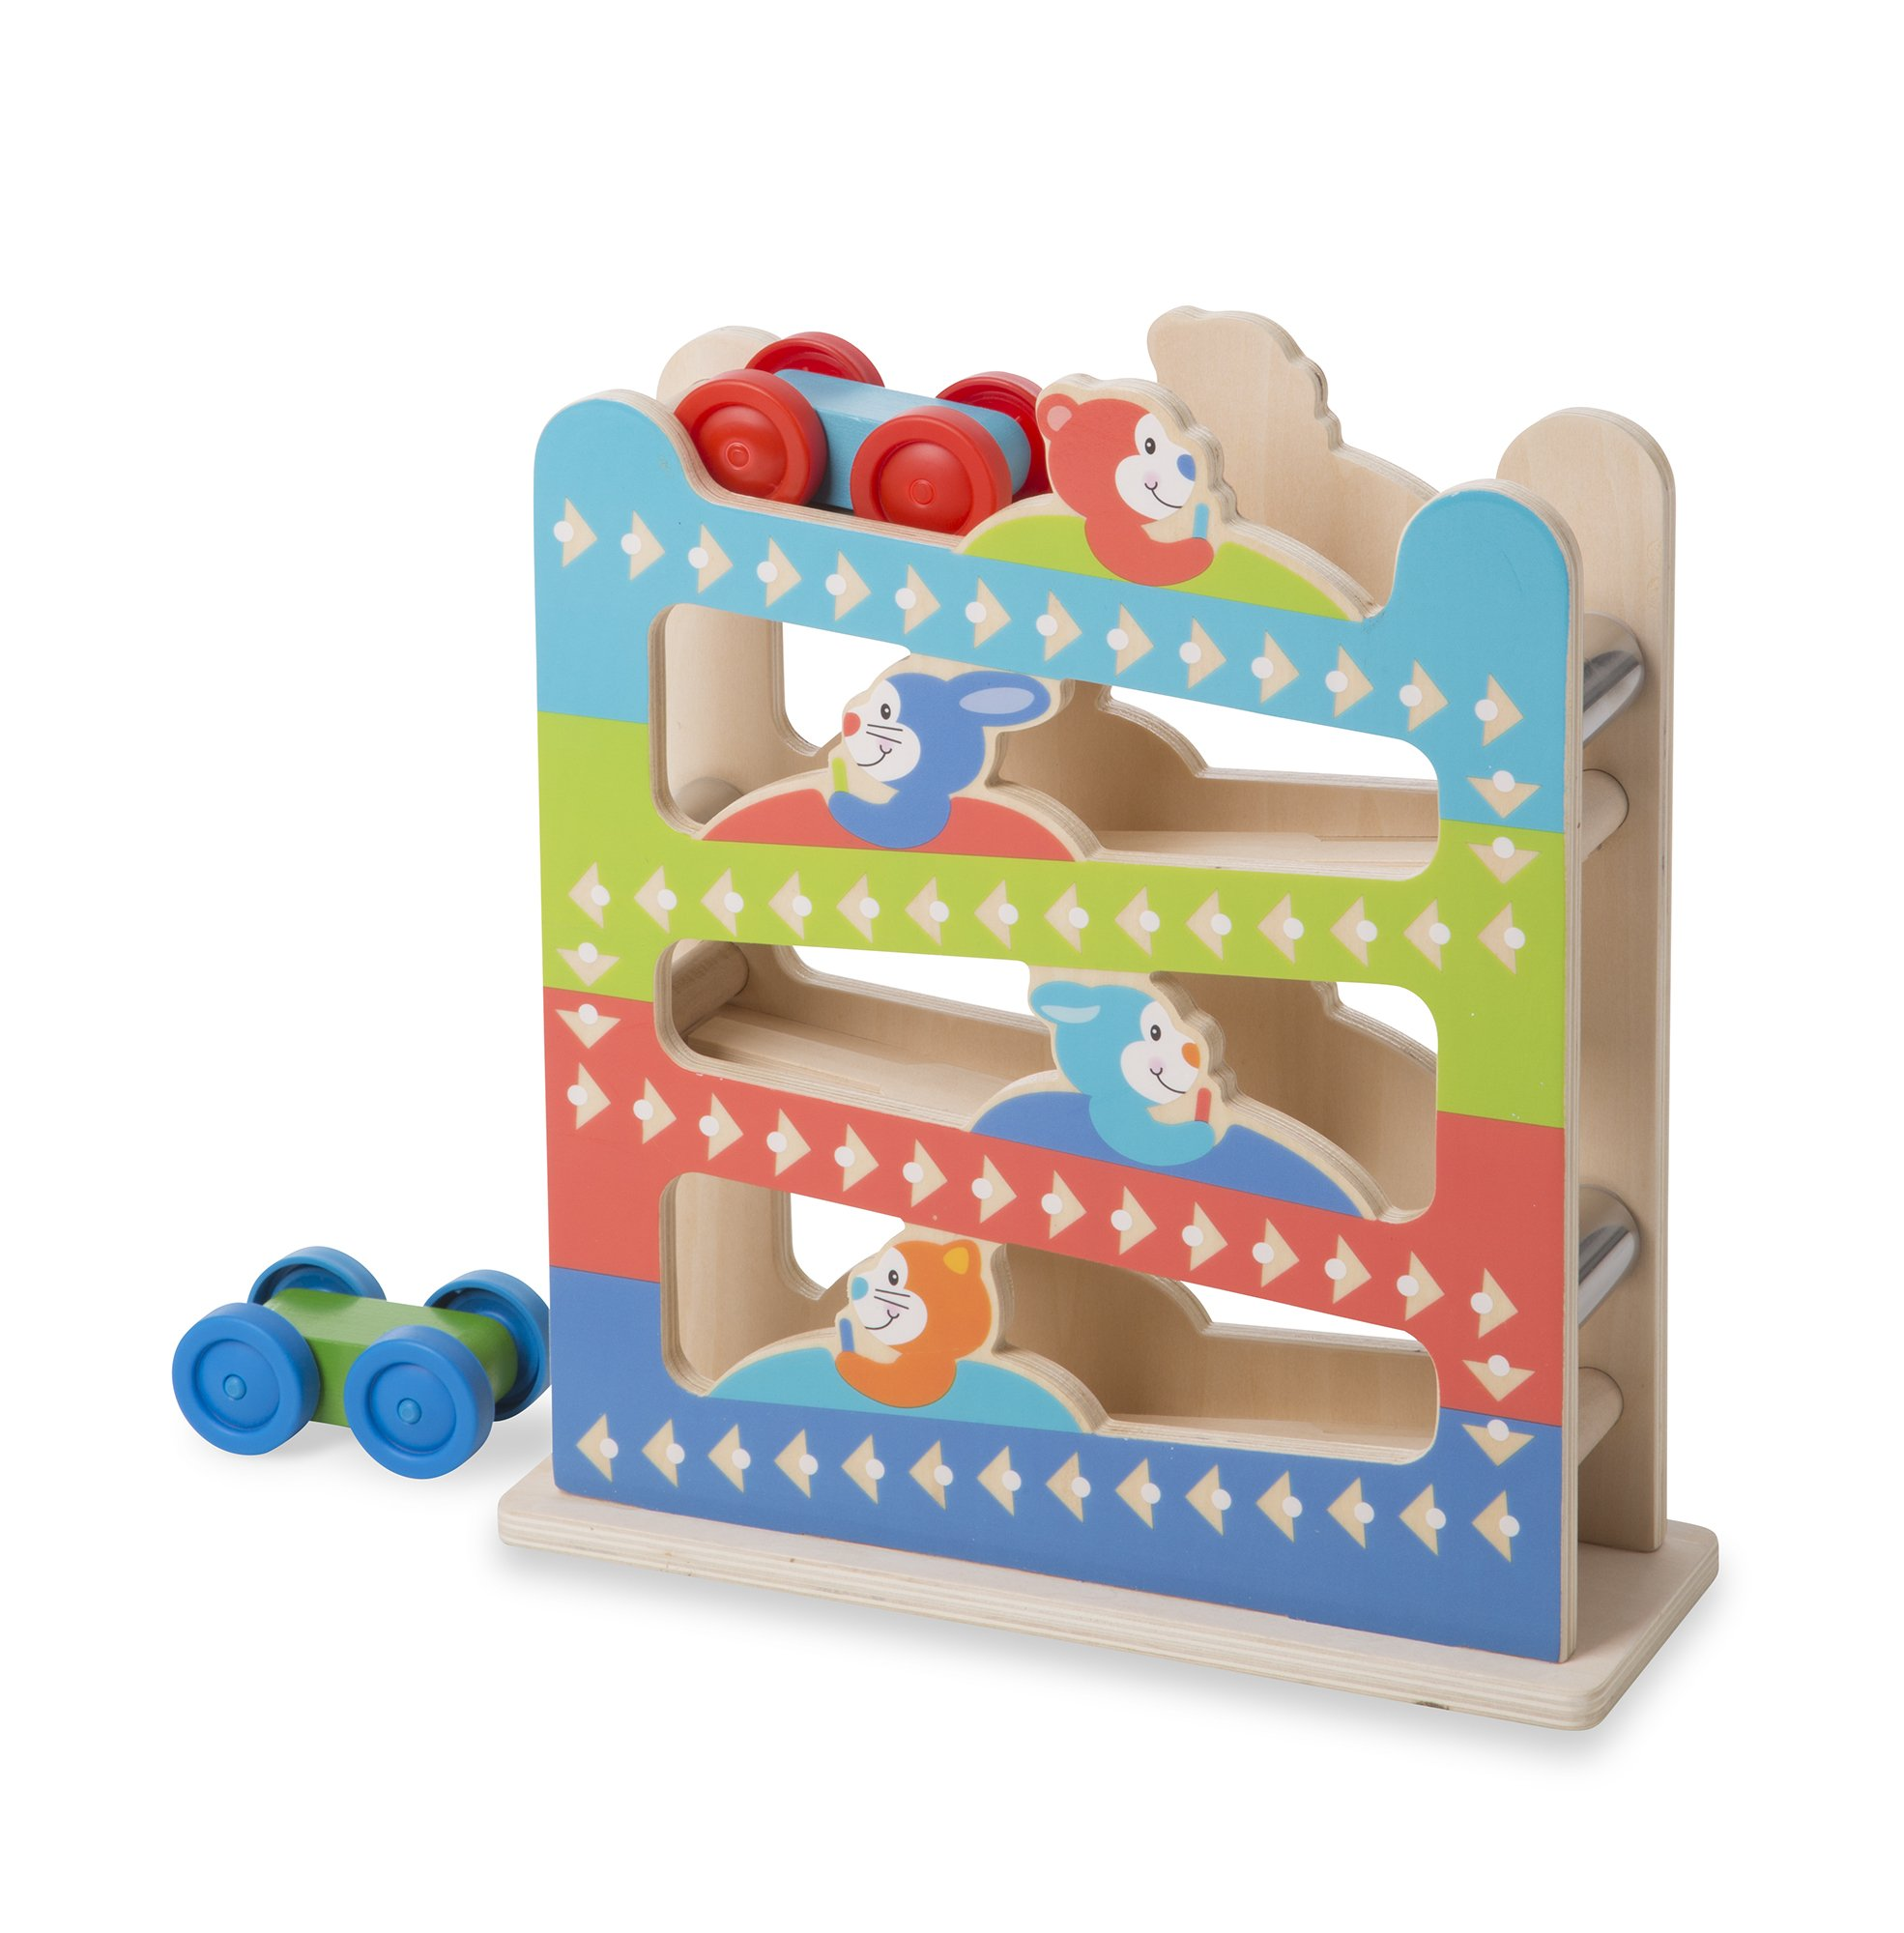 Melissa & Doug First Play Roll & Ring Ramp Tower 2 Wooden Cars, Multicolor